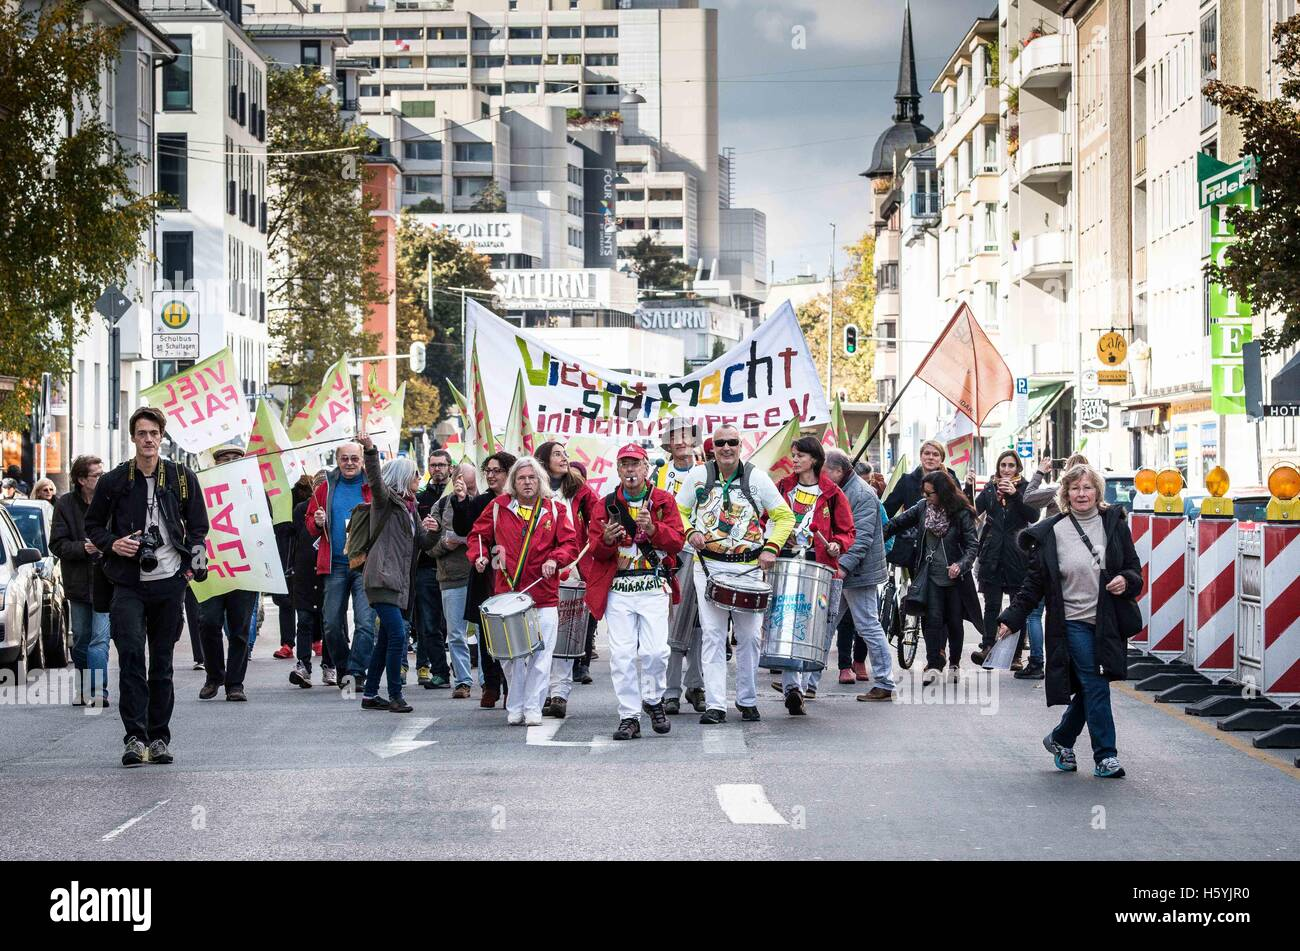 October 22, 2016 Munich, Germany. 22nd Oct, 2016. 1,800 Residents, students, and labor unions in Munich demonstrated - Stock Image